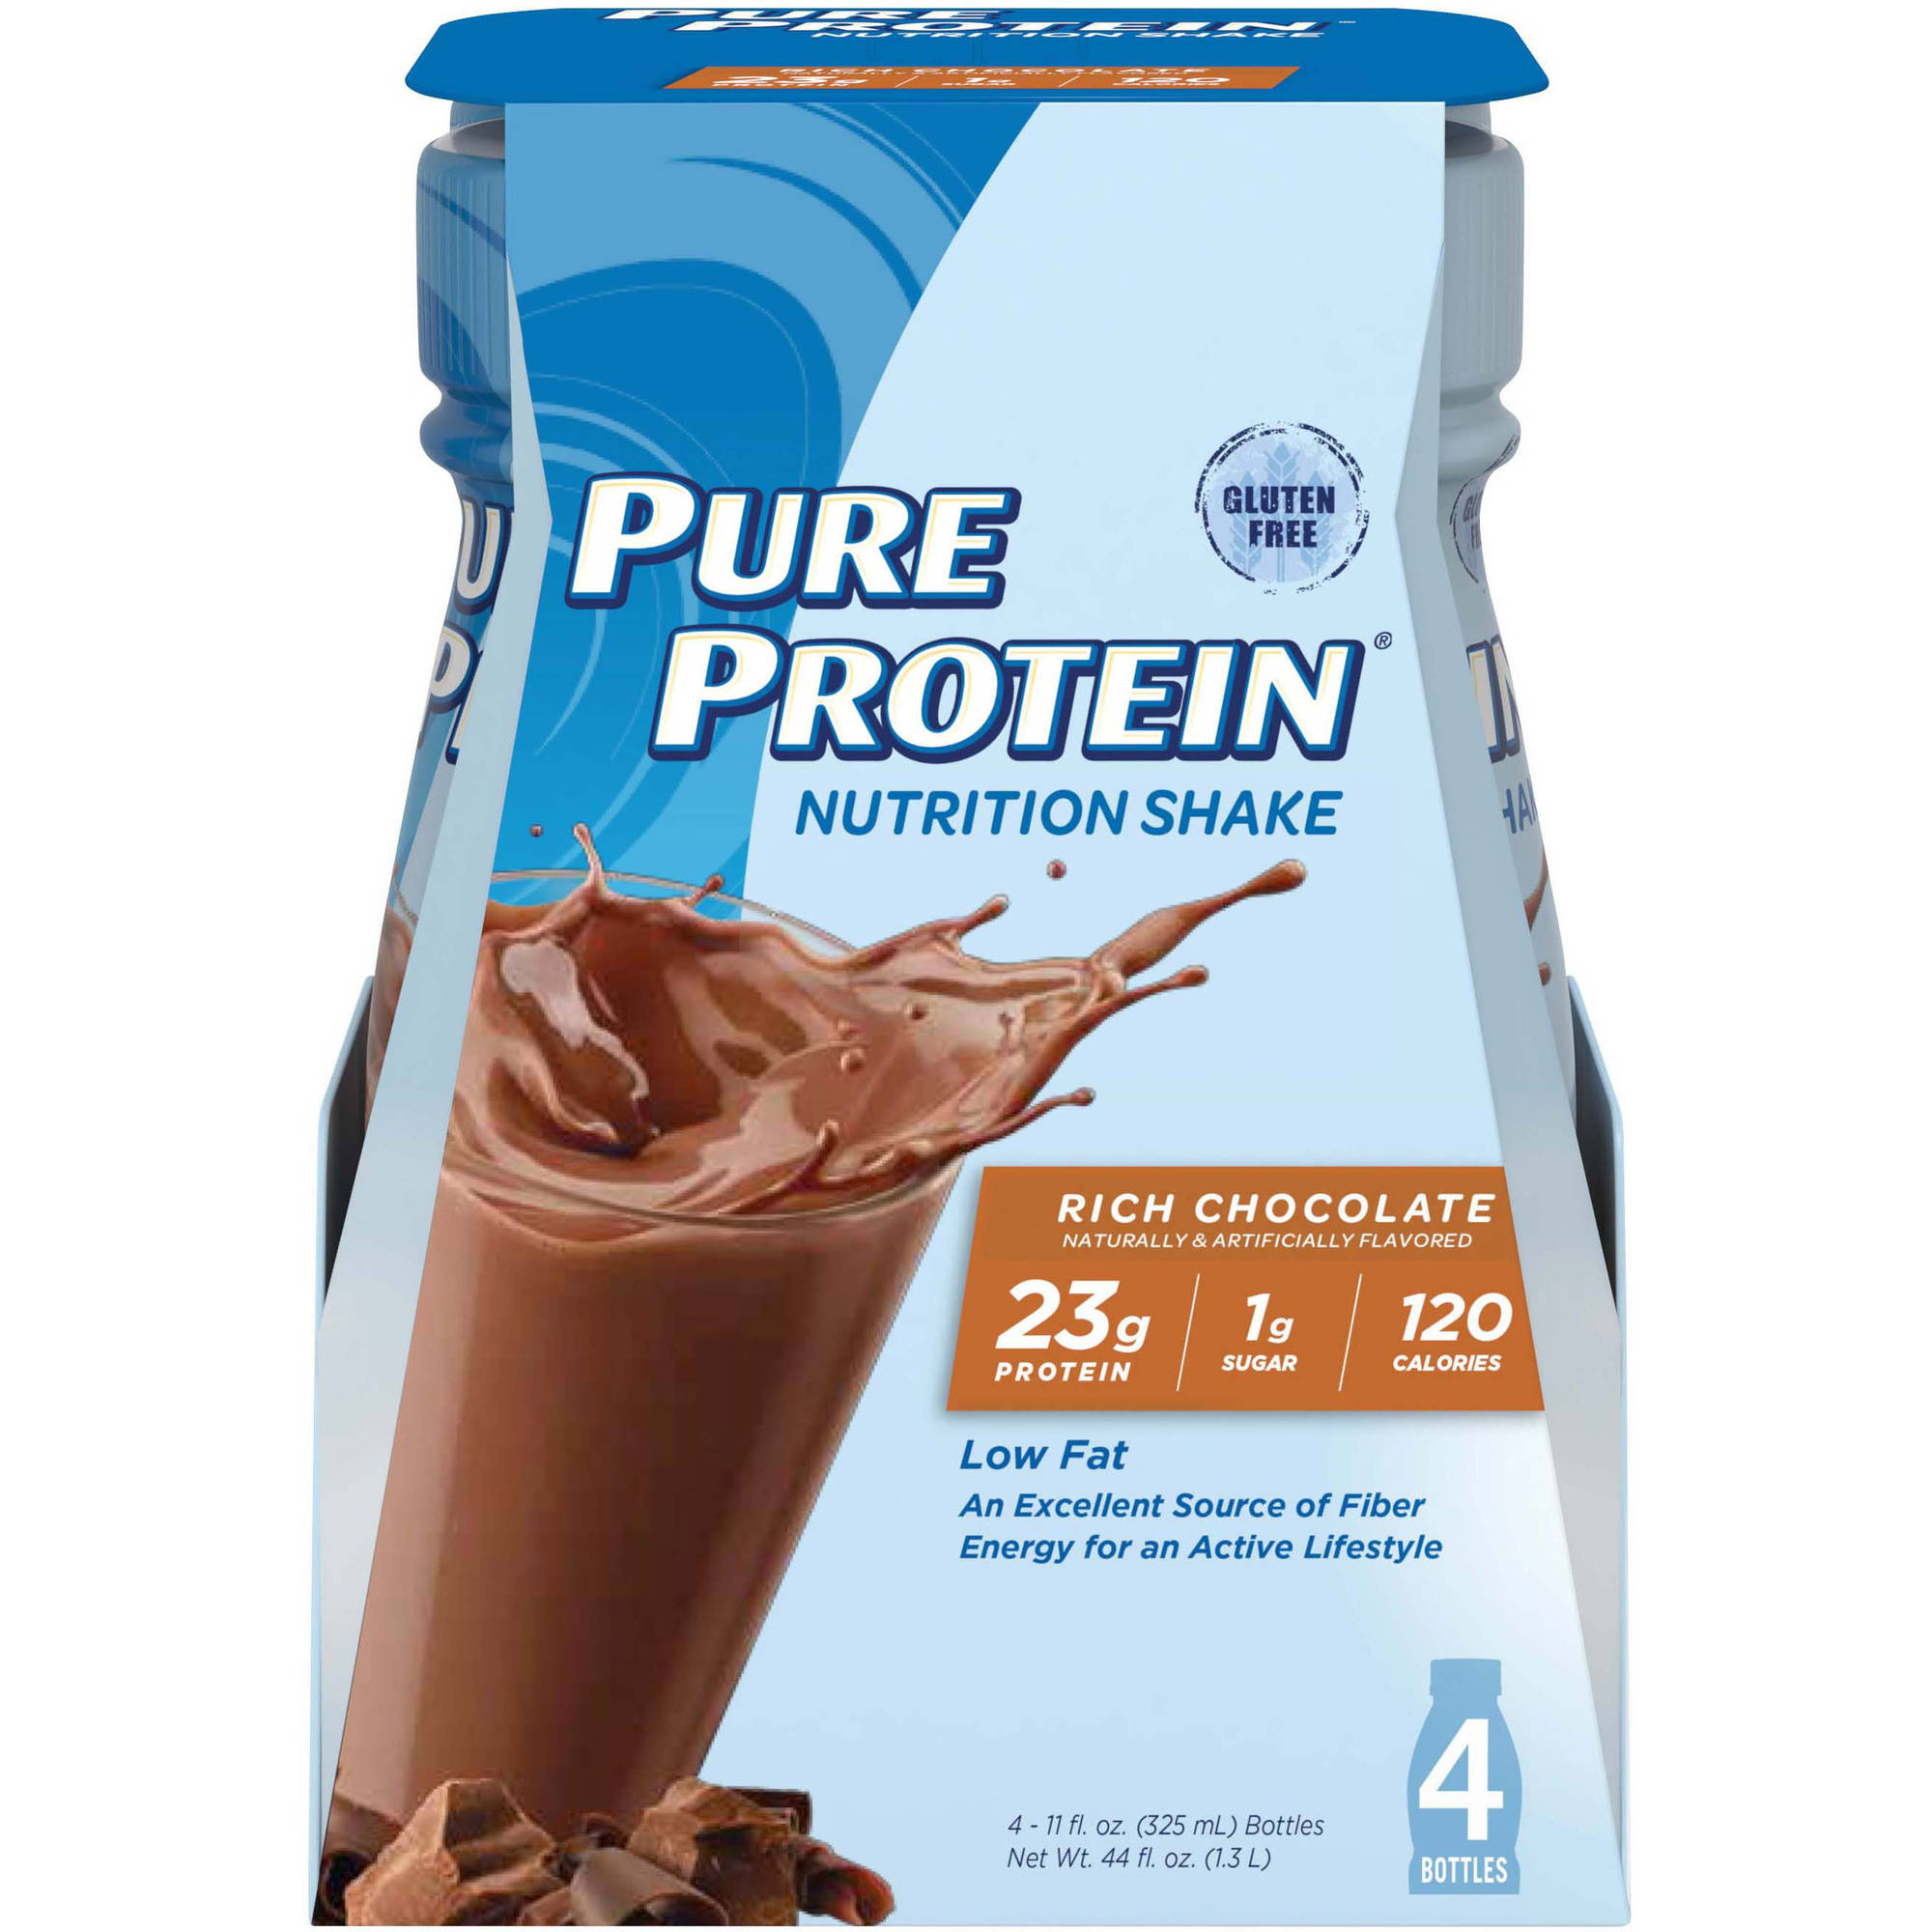 Pure Protein Shake, Chocolate, 23g Protein, 4 Ct